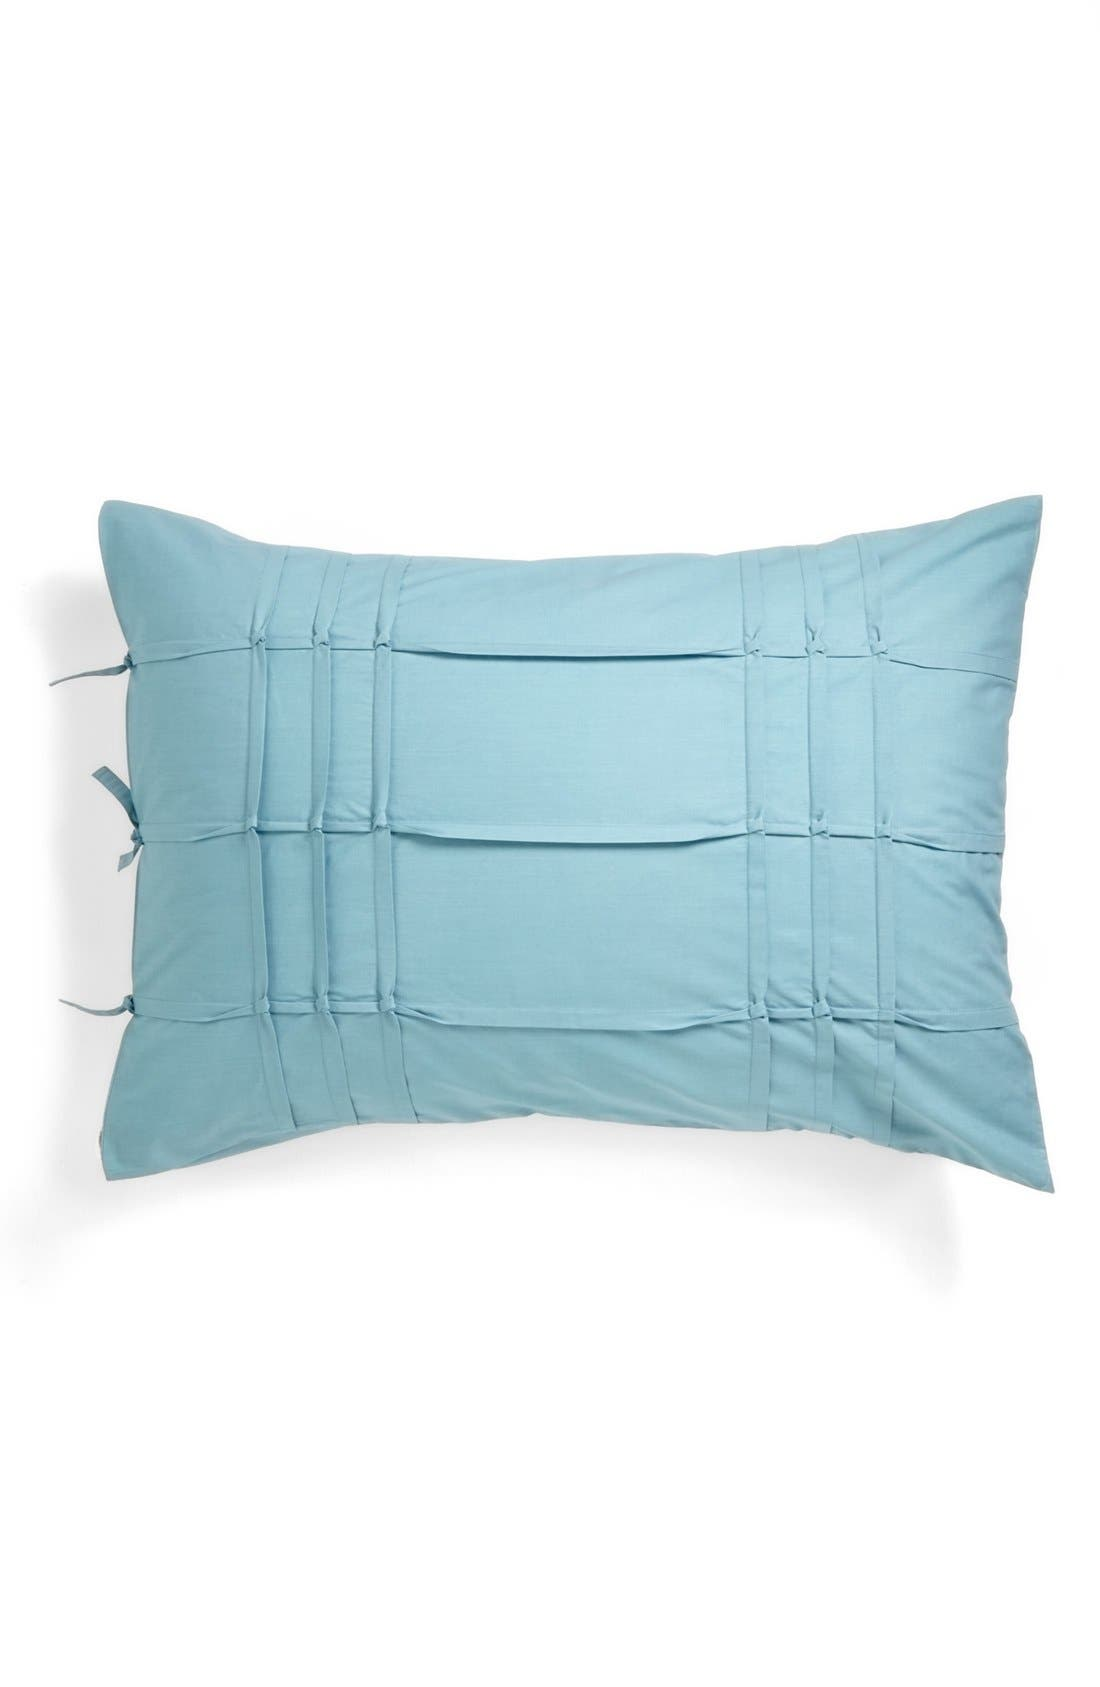 'Carson' Pillow Sham,                         Main,                         color, Teal Waters